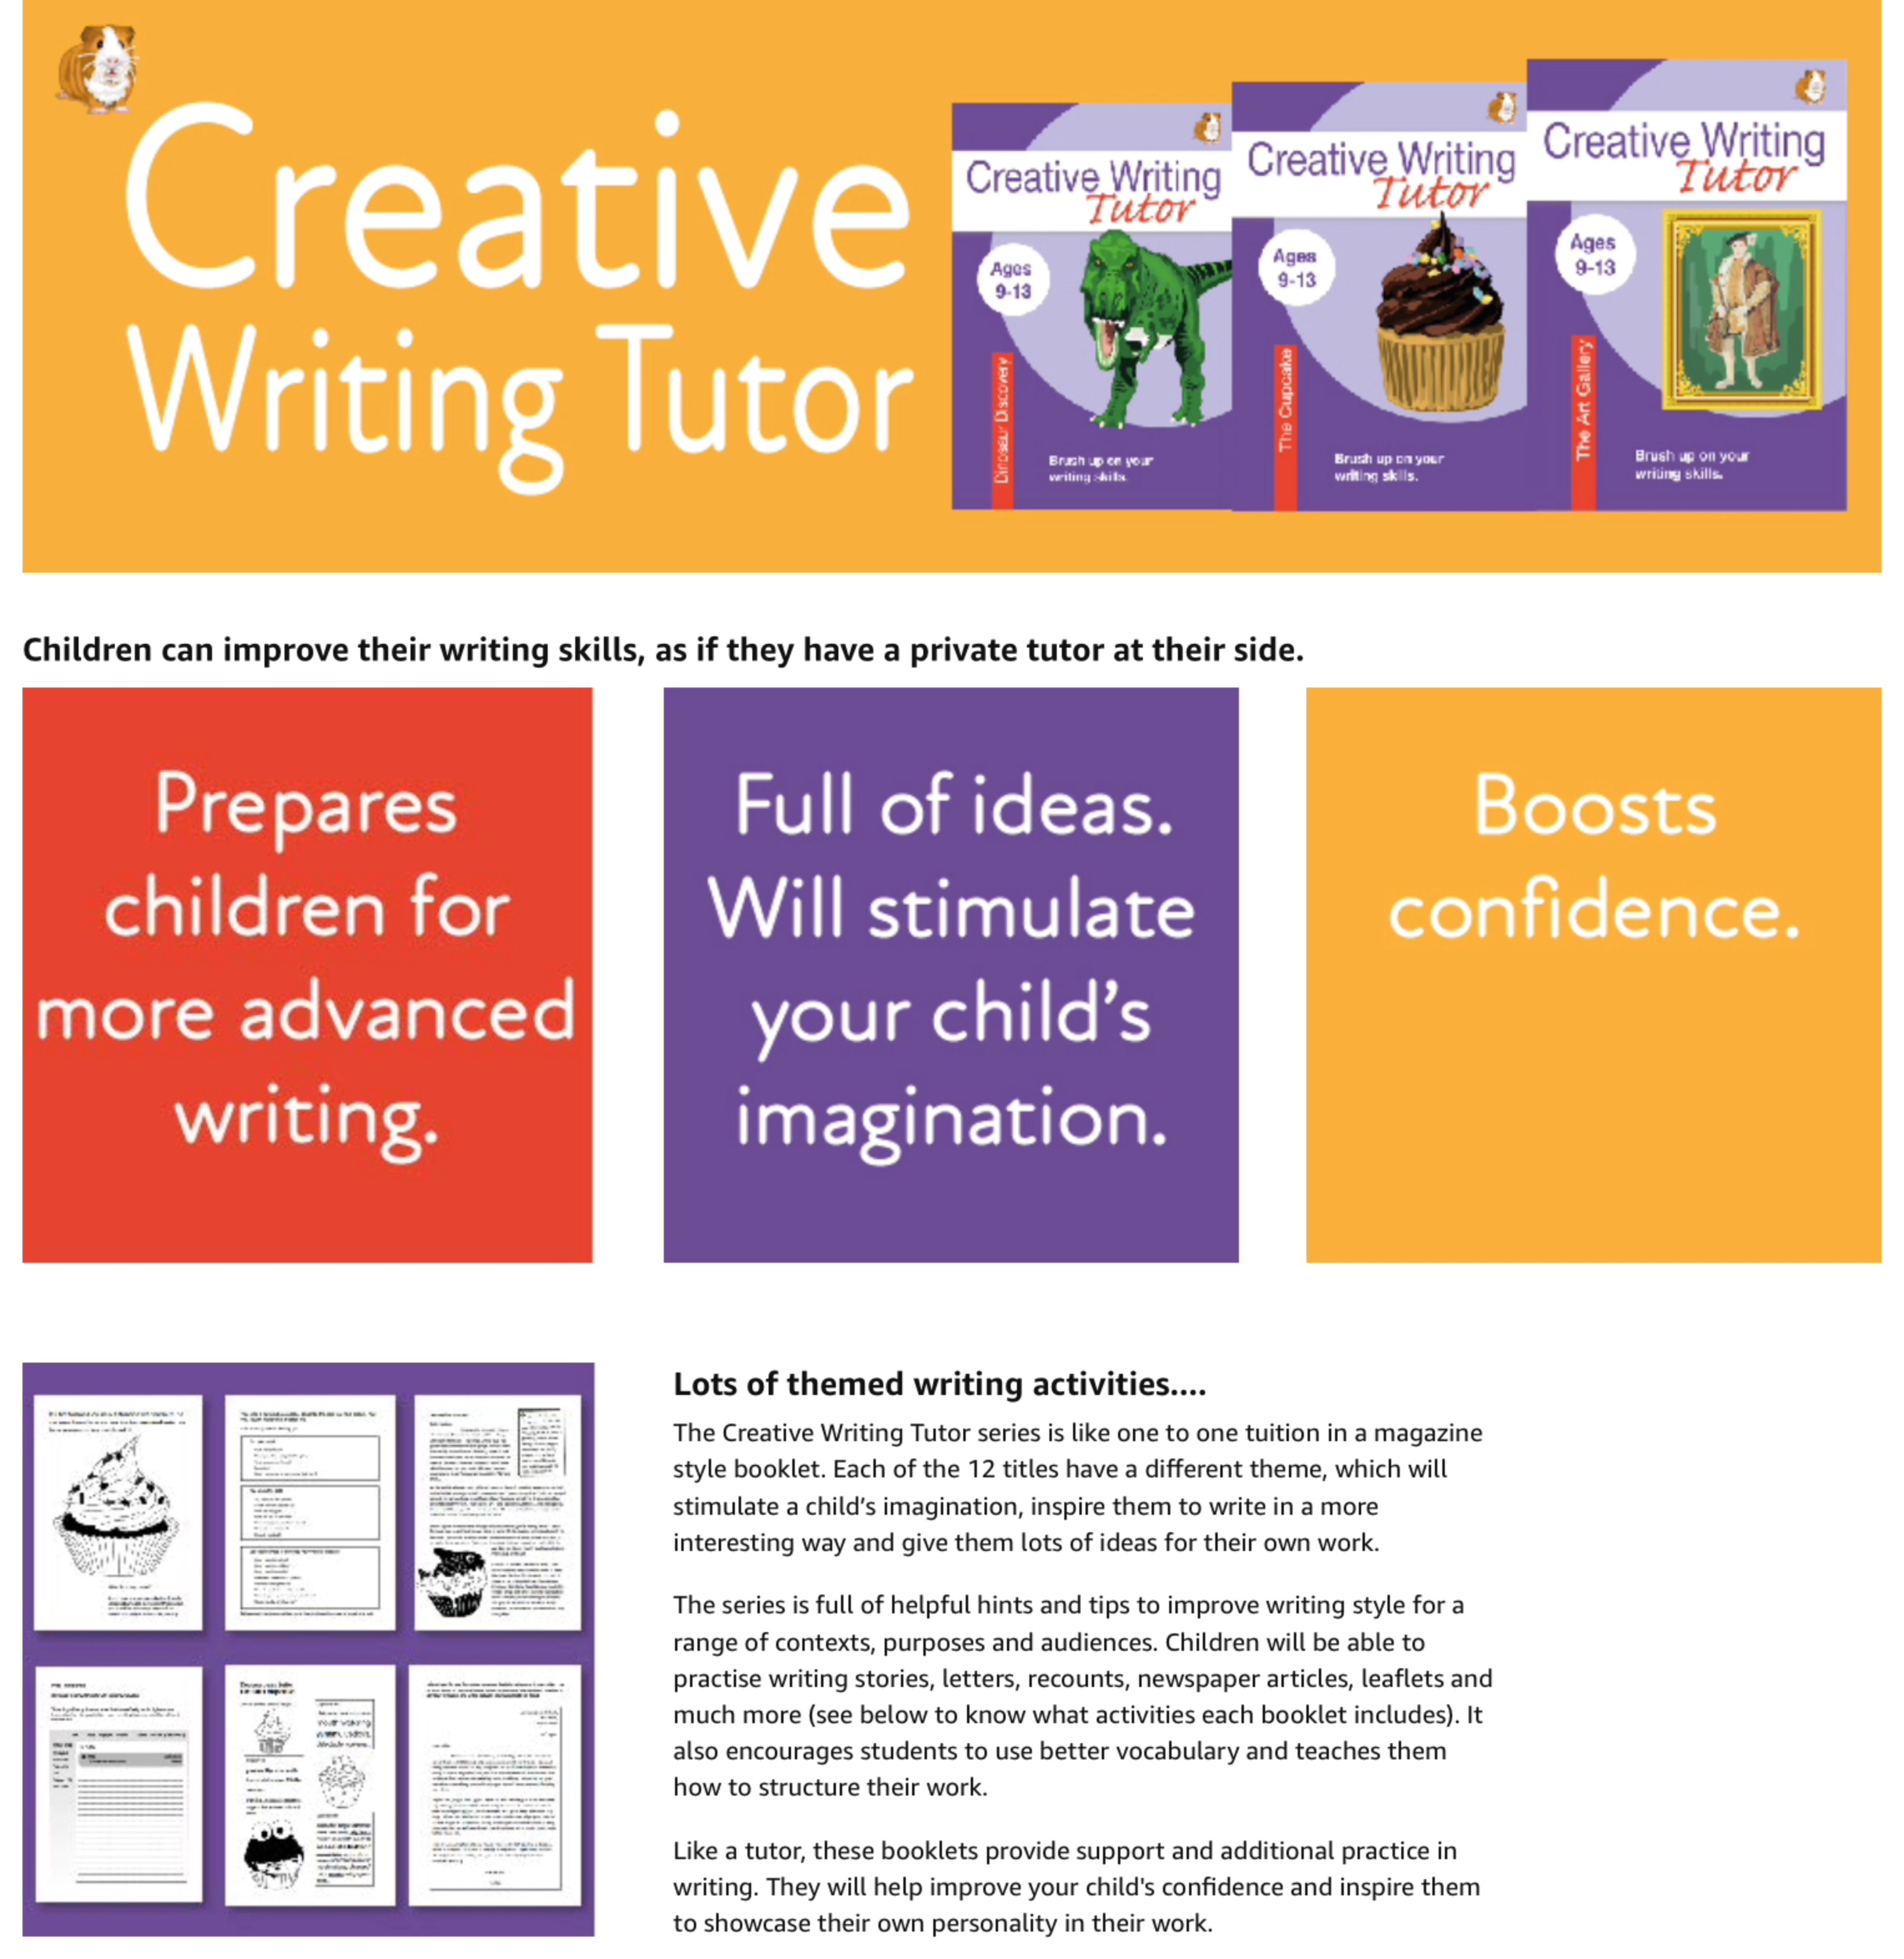 Changes: Brush Up On Your Writing Skills (Creative Writing Tutor) (ages 9-13 years)